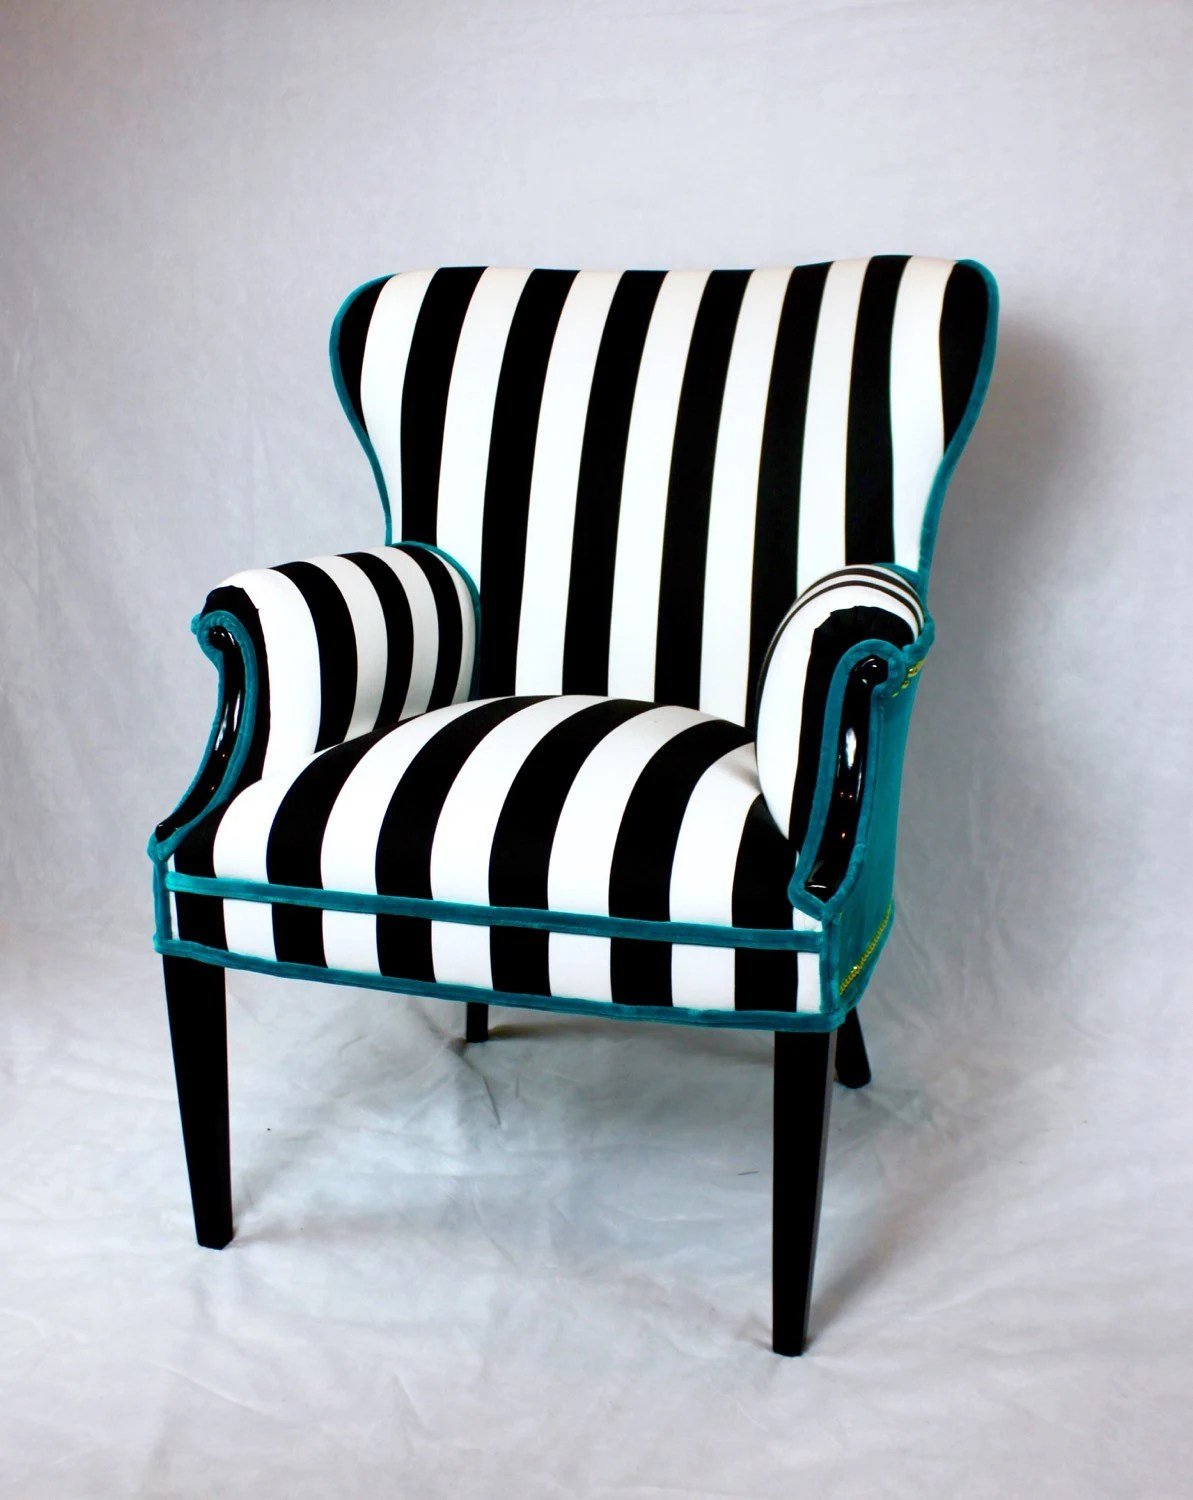 Black And White Striped Chair Sold Black And White Striped Vintage Round Wing Back Chair